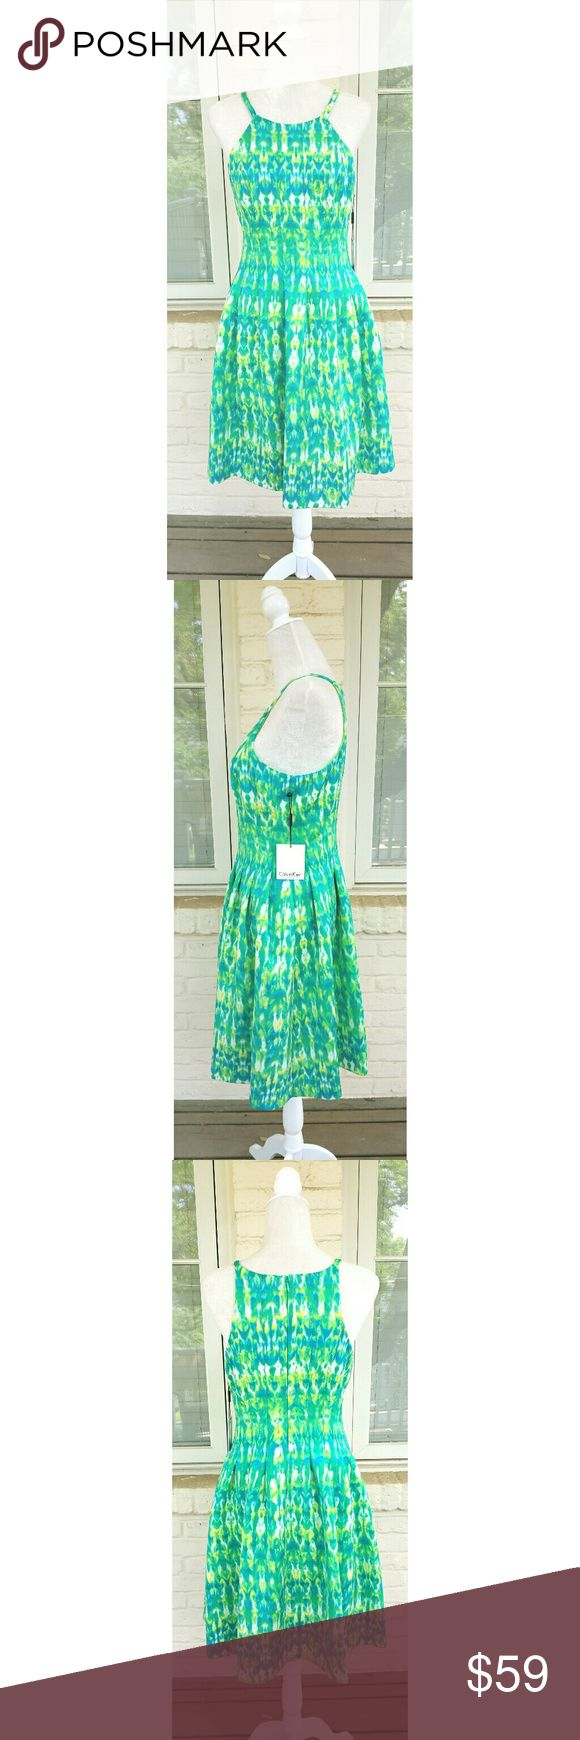 NWT, Calvin Klein Sleeveless Spring Dress Gorgeous, brand new Calvin Klein Spring dress is perfect for Easter! The colors are beautiful! Calvin Klein Dresses Midi